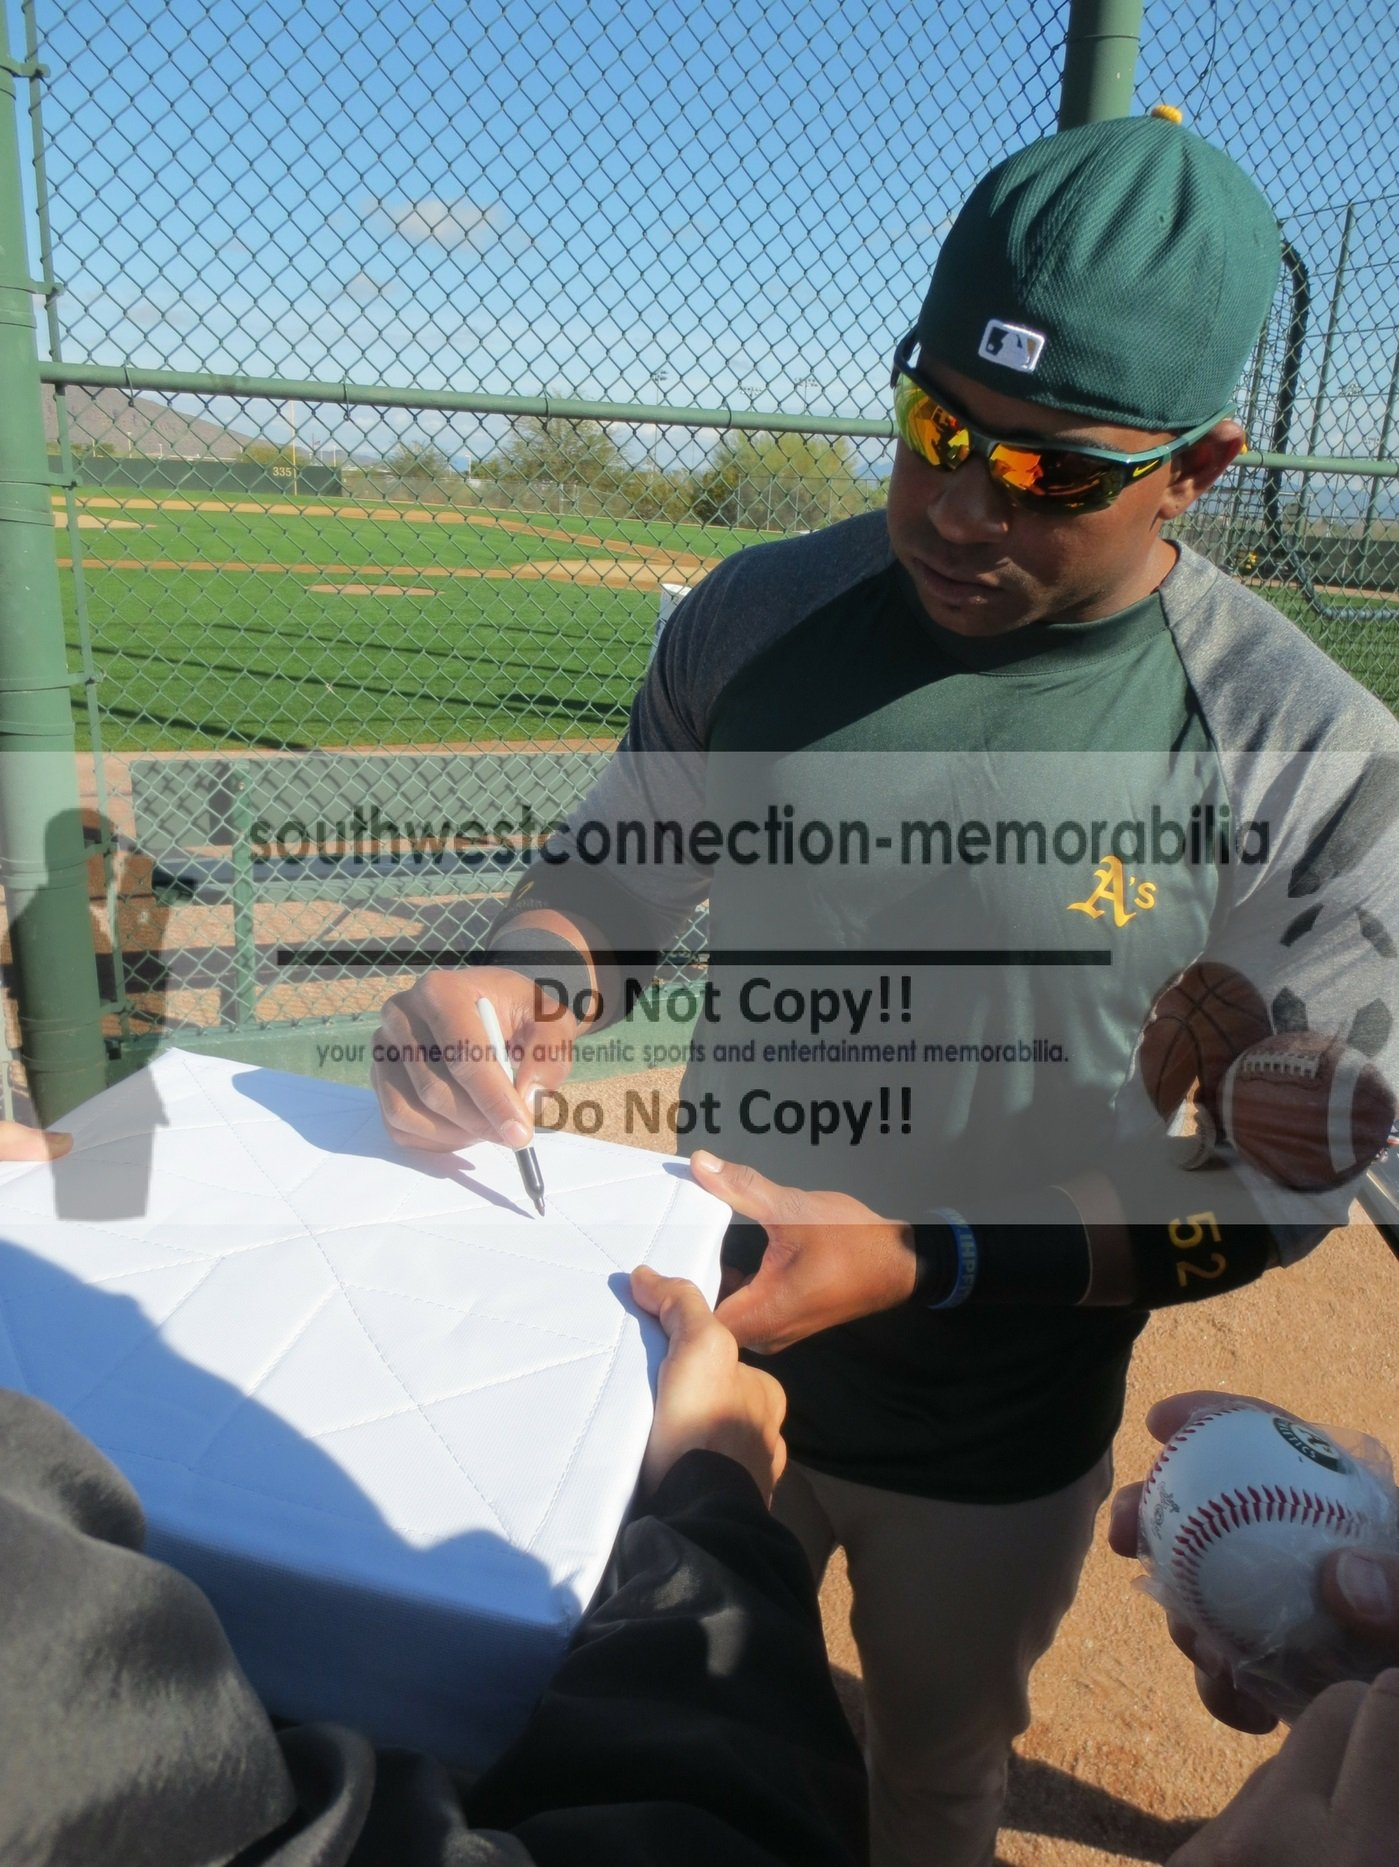 Oakland Athletics Yoenis Cespedes Autographed Hand Signed 2014 MLB All Star Game Baseball Full Size Base with Proof Photo of Signing and COA Oakland A's Collectibles